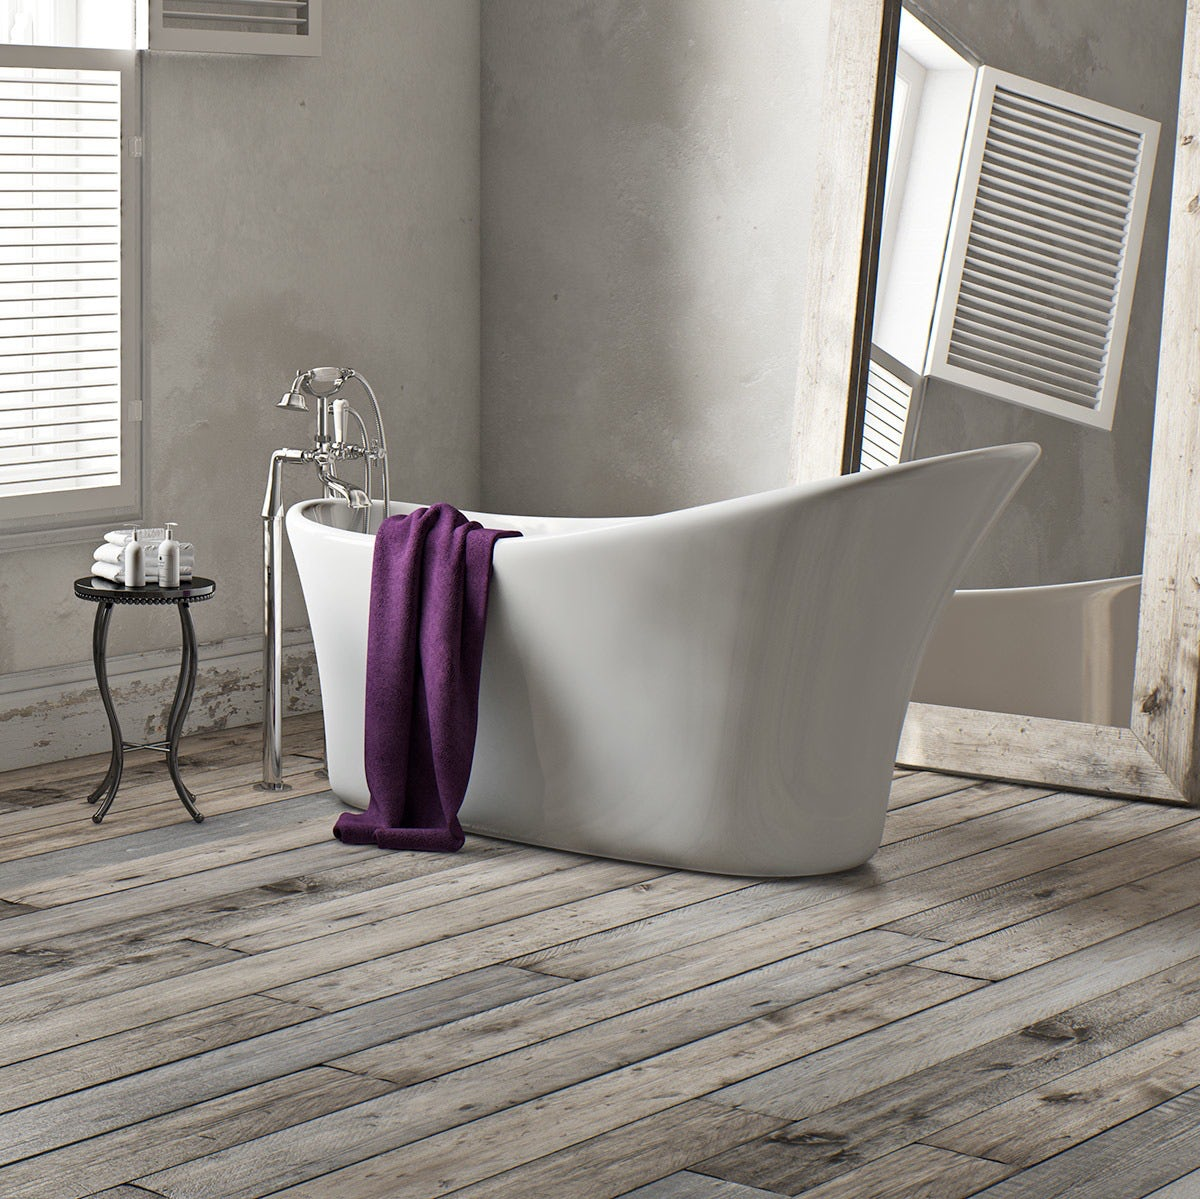 Mode Harding single ended slipper bath